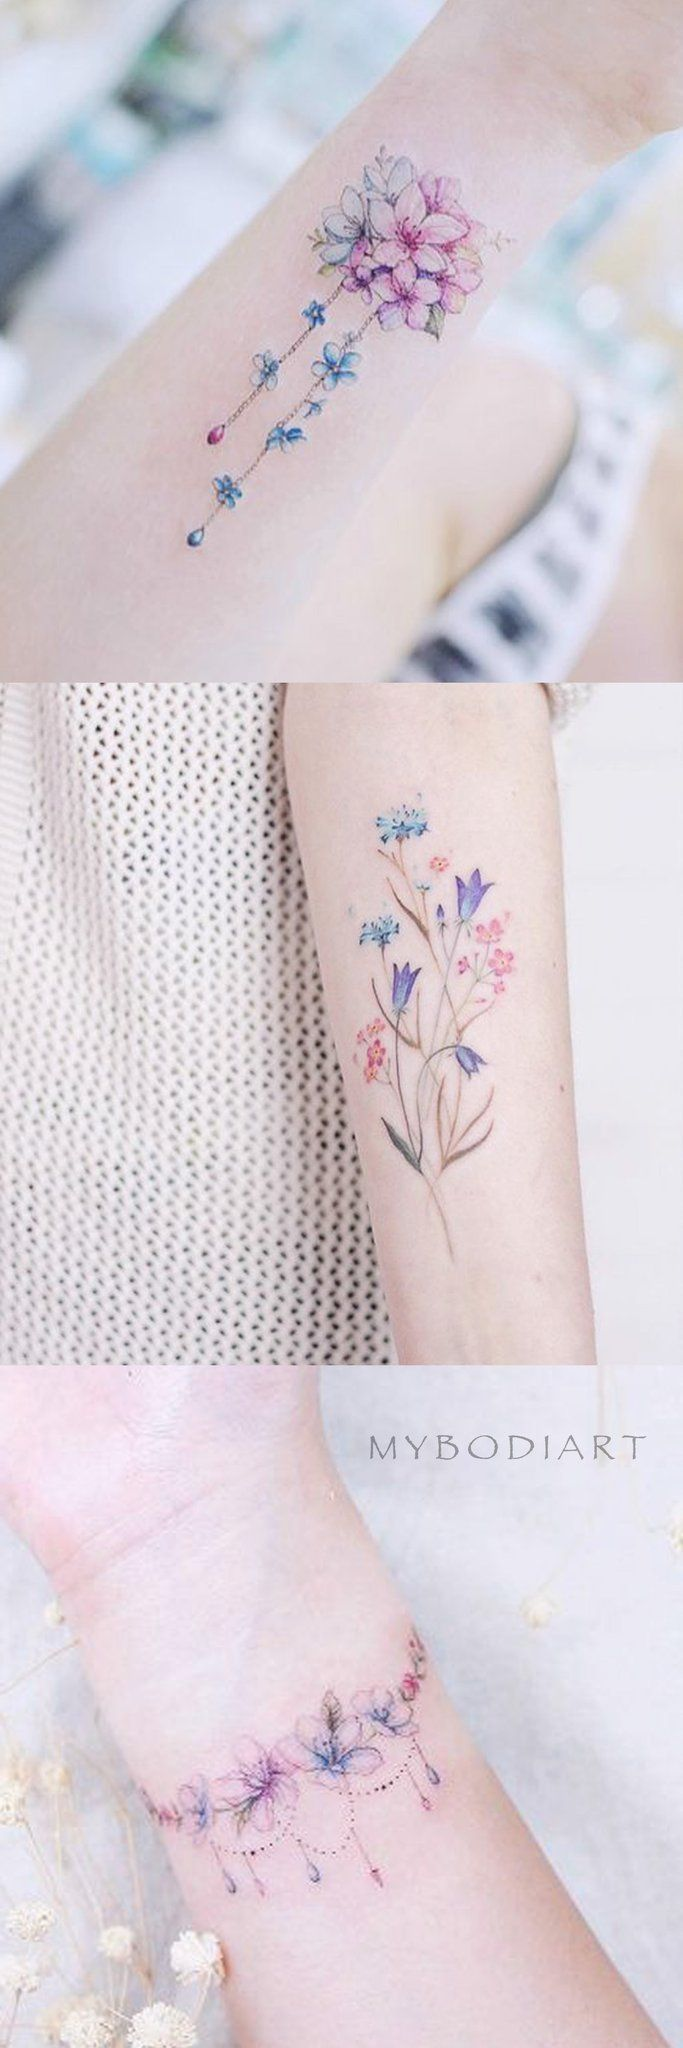 40 Delicate Henna Tattoo Designs Amoderndiva Ml Ideas And Designs